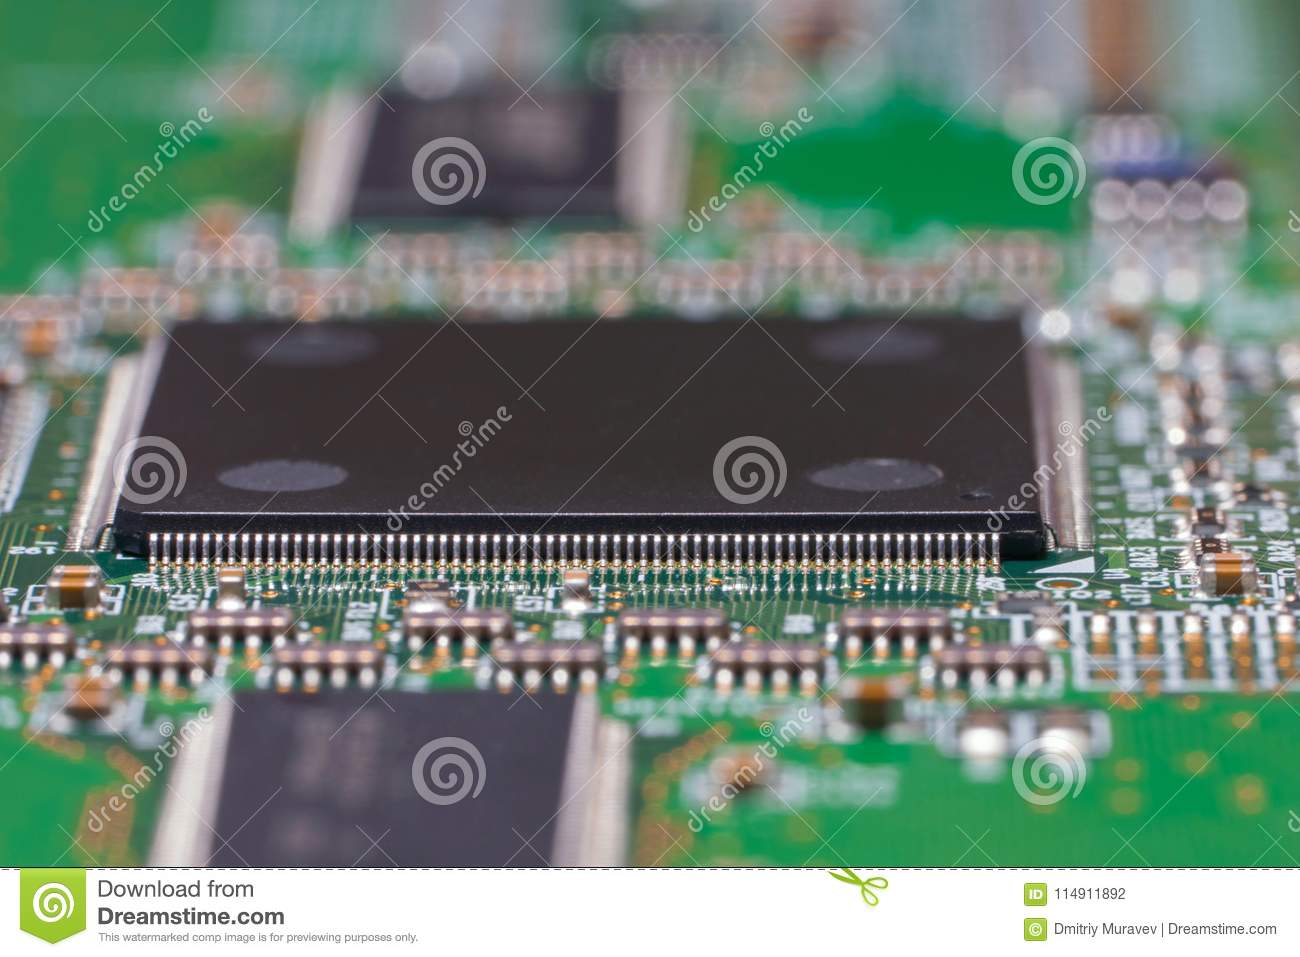 smd circuit board stock photos royalty free stock images rh dreamstime com 0402 Dimensions Package Circuit Board Stencil